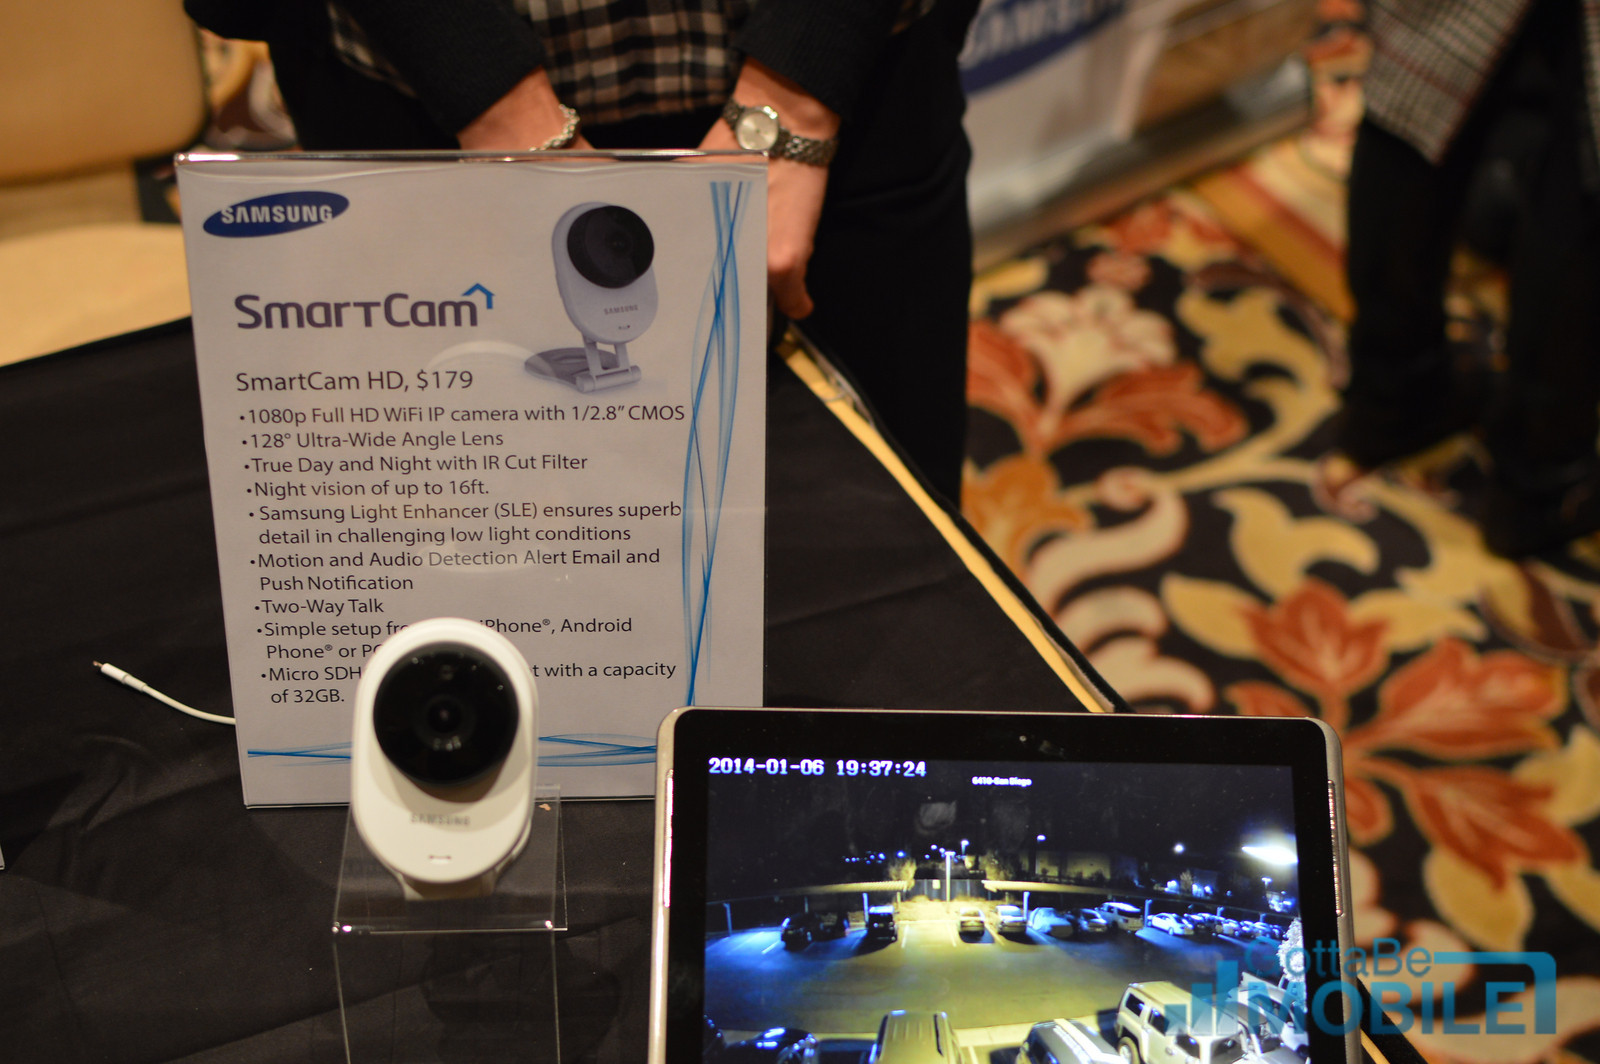 Samsung SmartCam HD Announced for Outdoor Security – Gotta